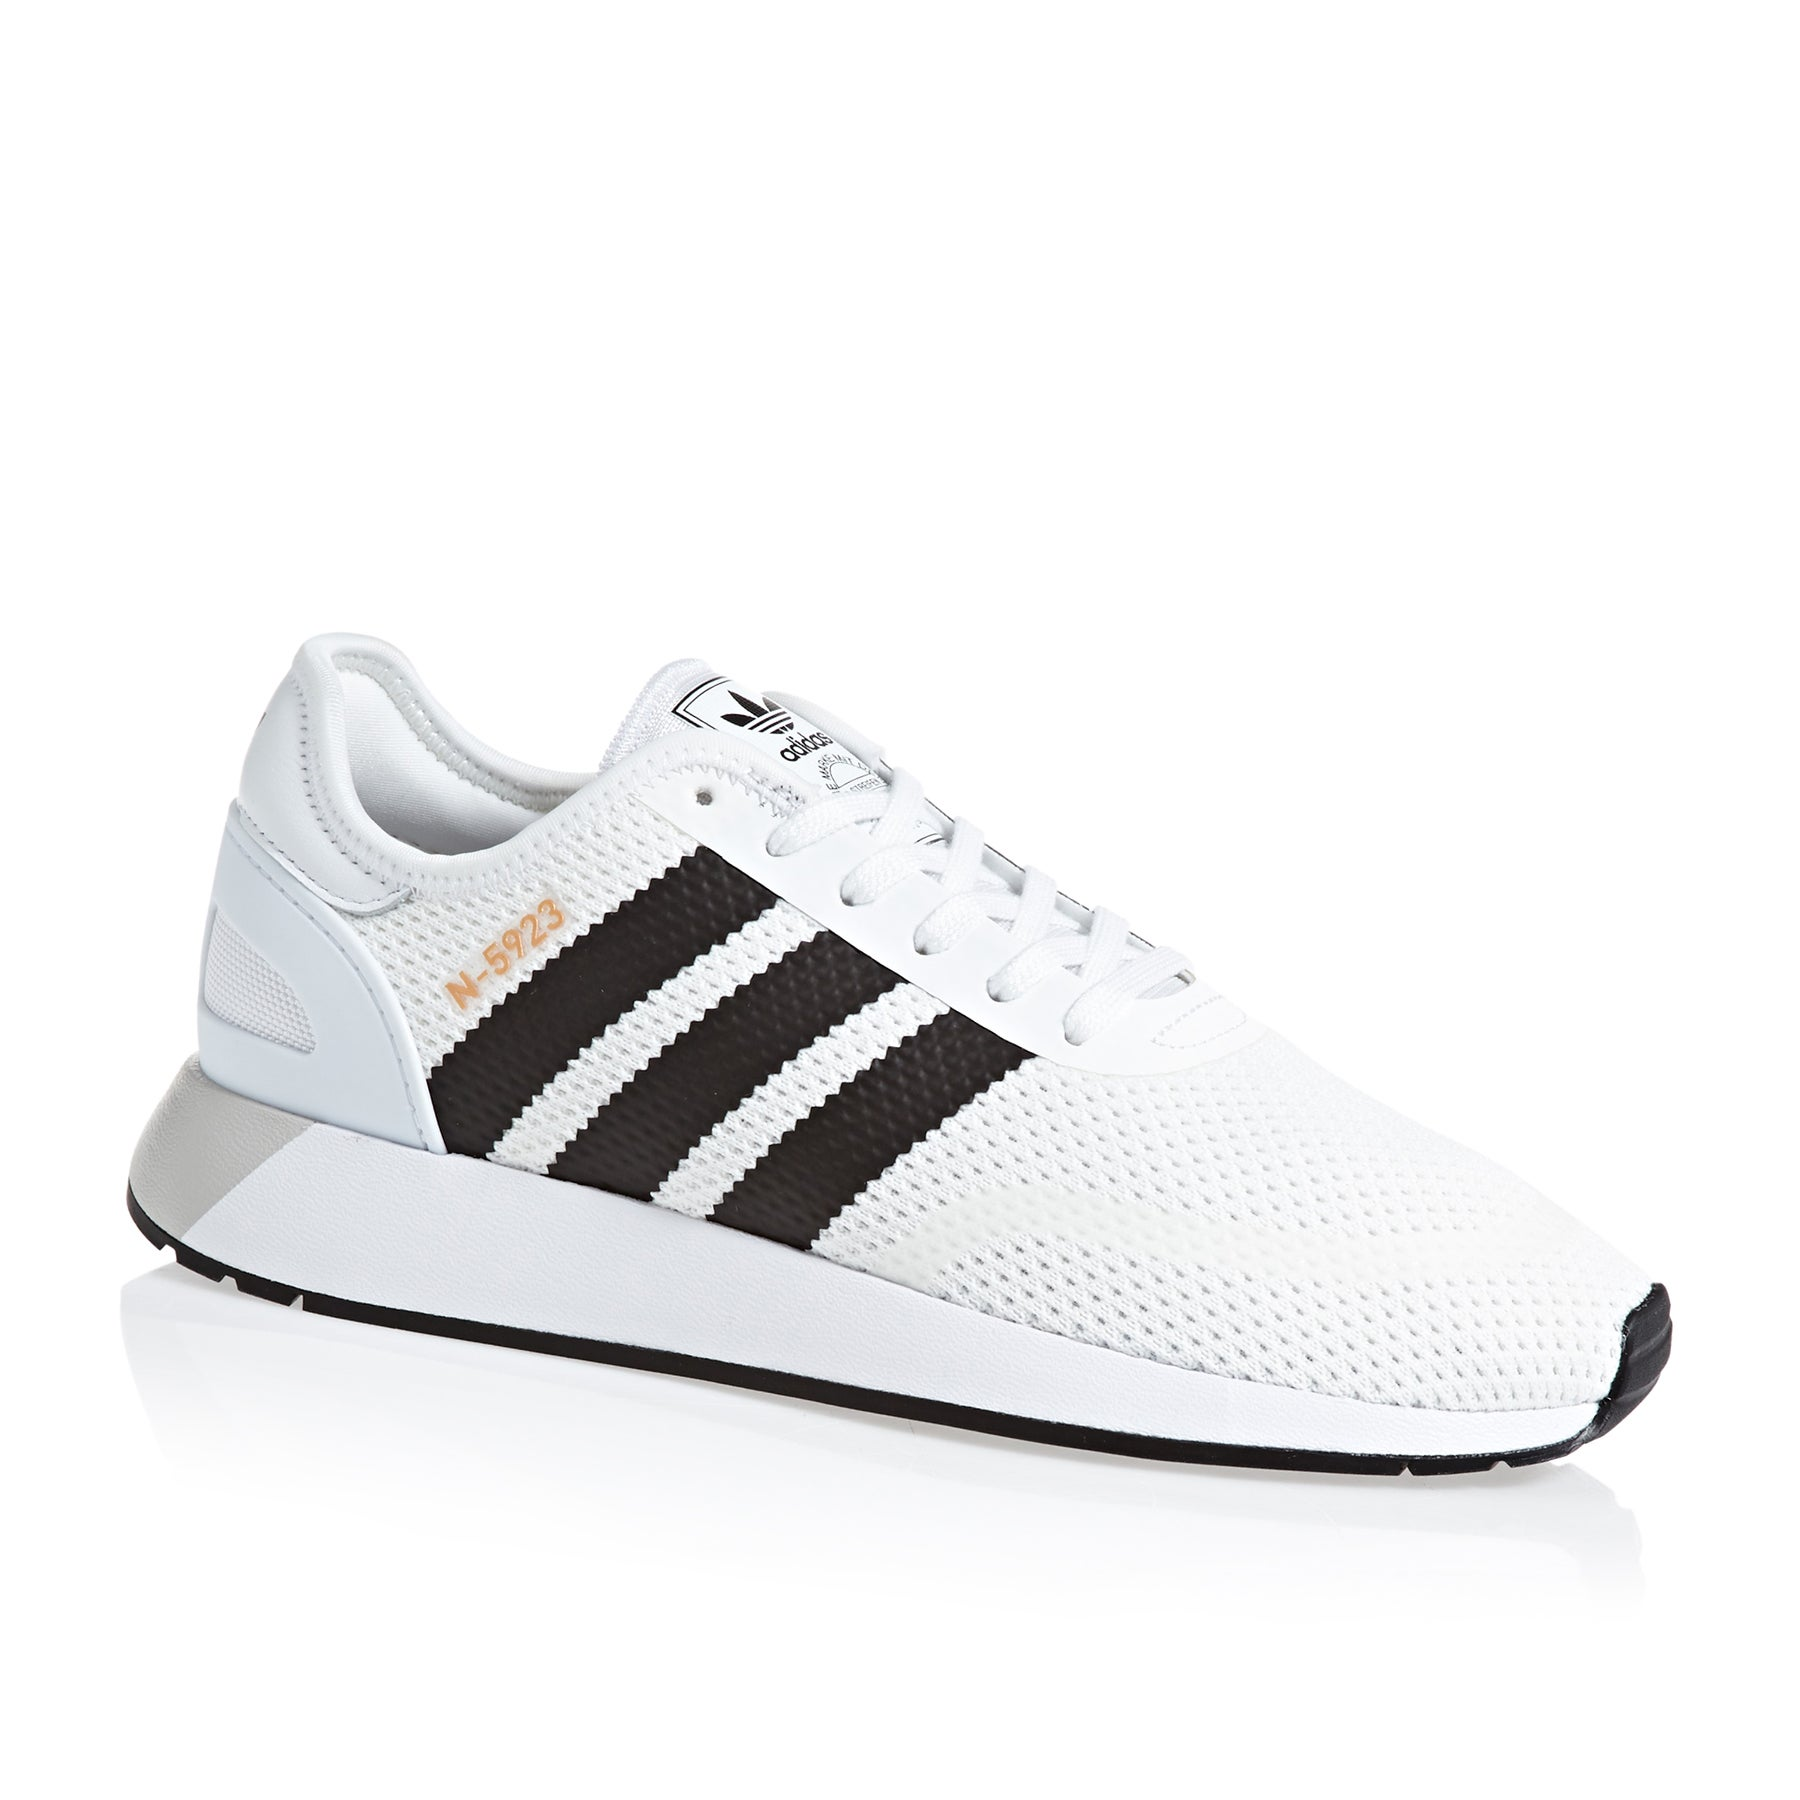 Adidas Originals Iniki Runner Cls Shoes